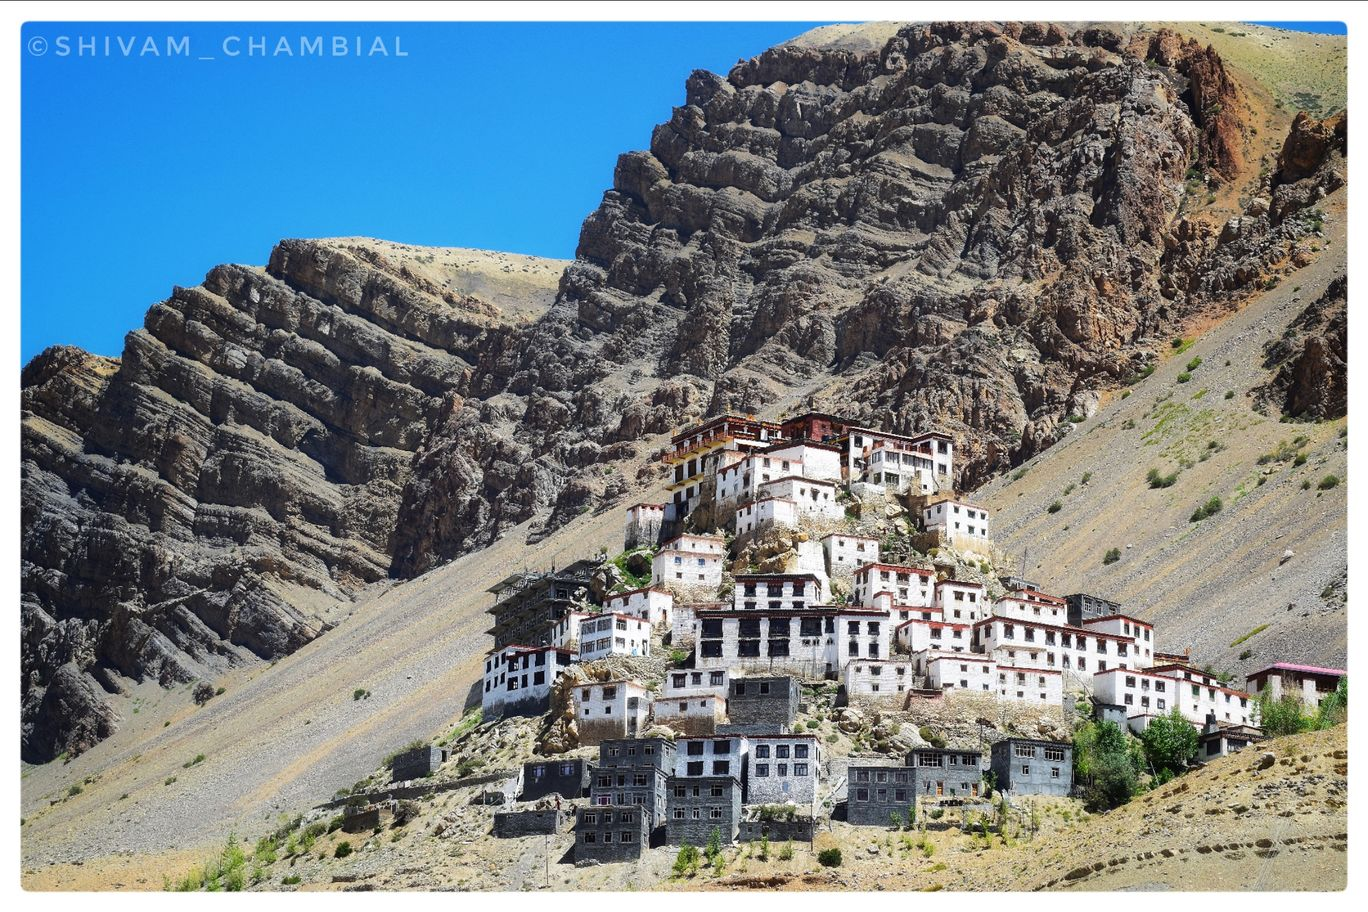 Photo of Spiti Valley By Shivam Chambial